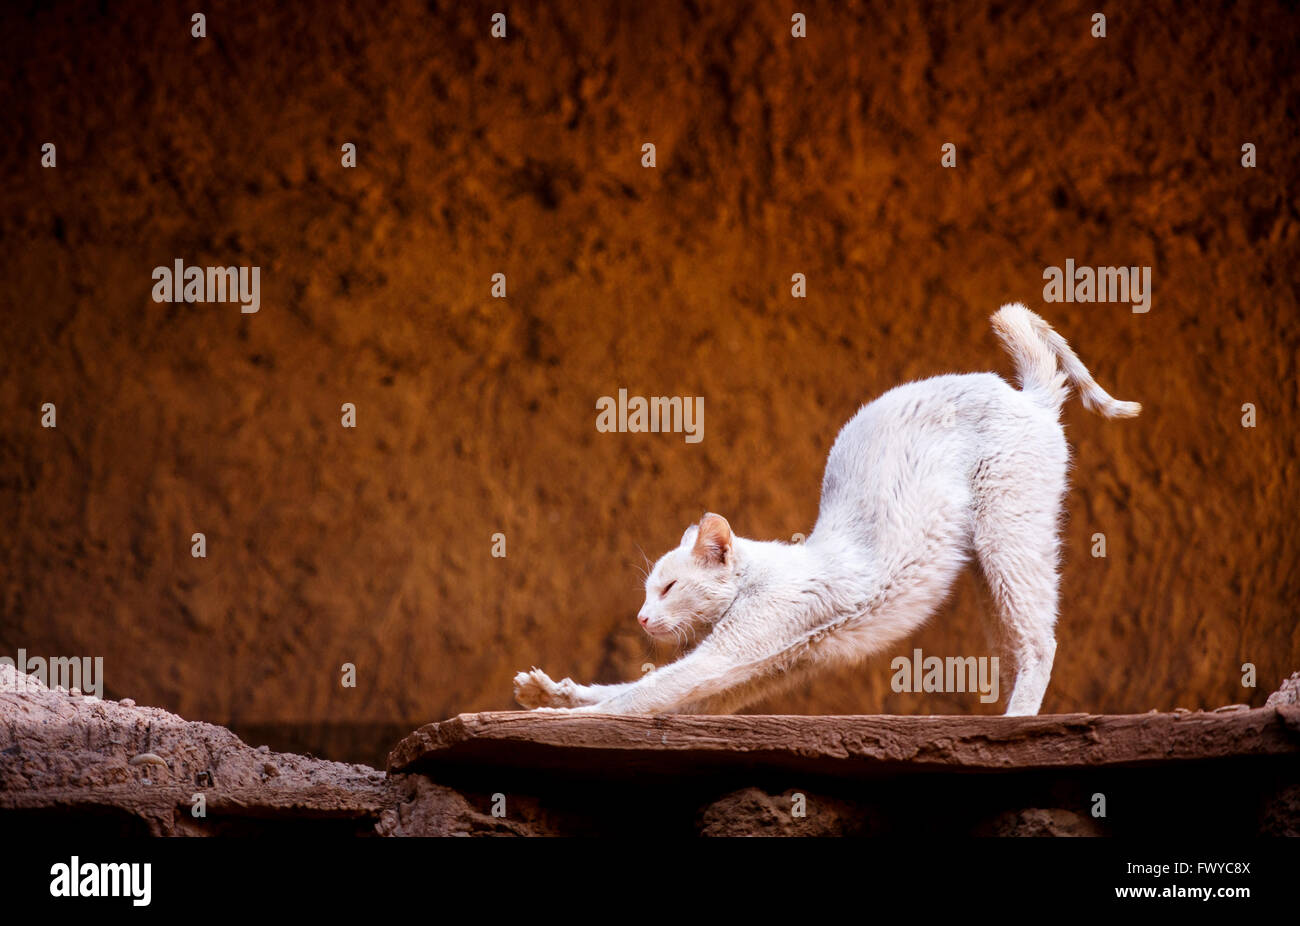 White yoga cat doing downward facing down dog pose - Stock Image